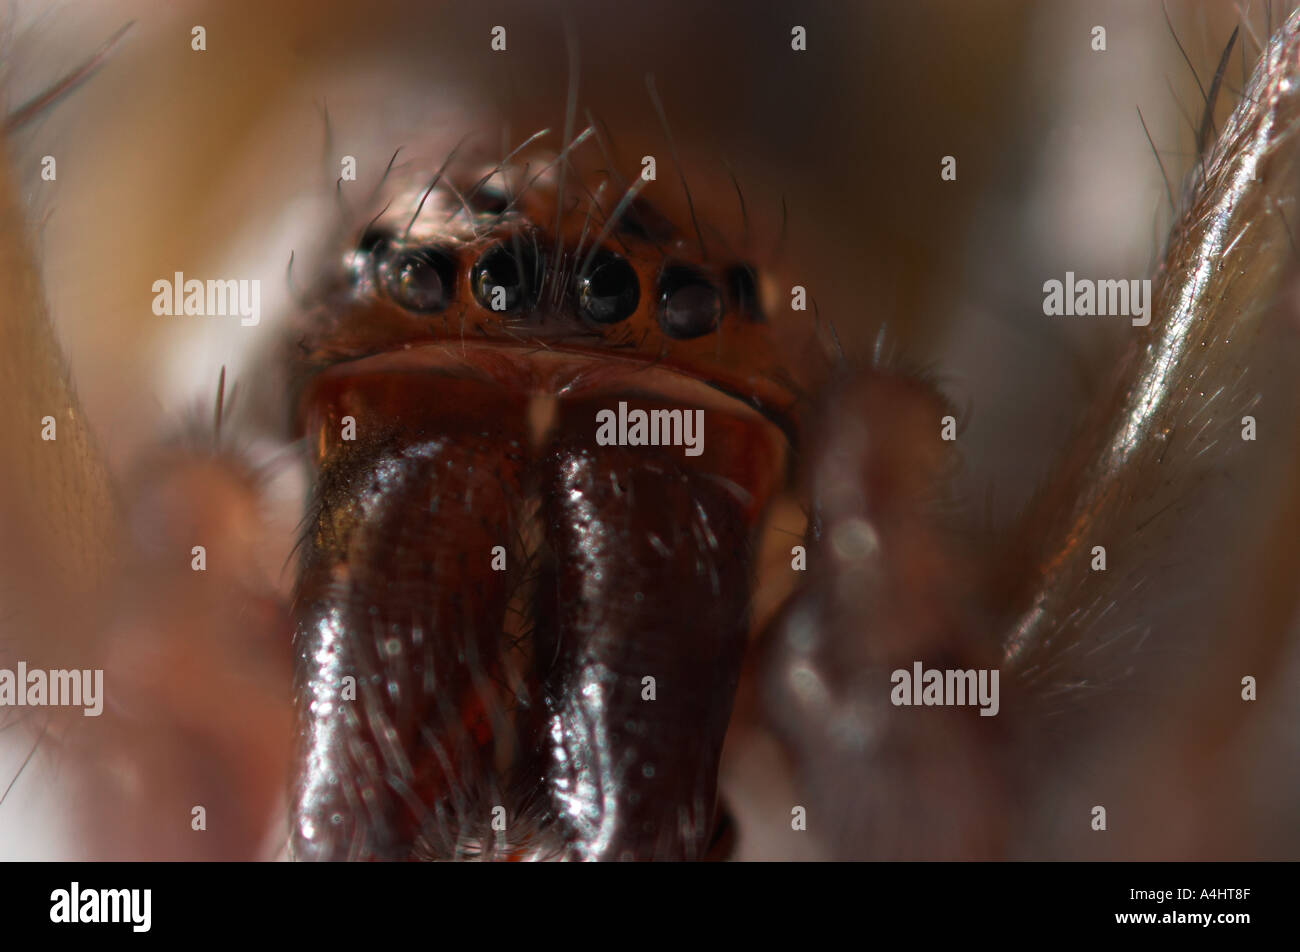 Extreme close up of wolf spiders multiple eyes - Stock Image